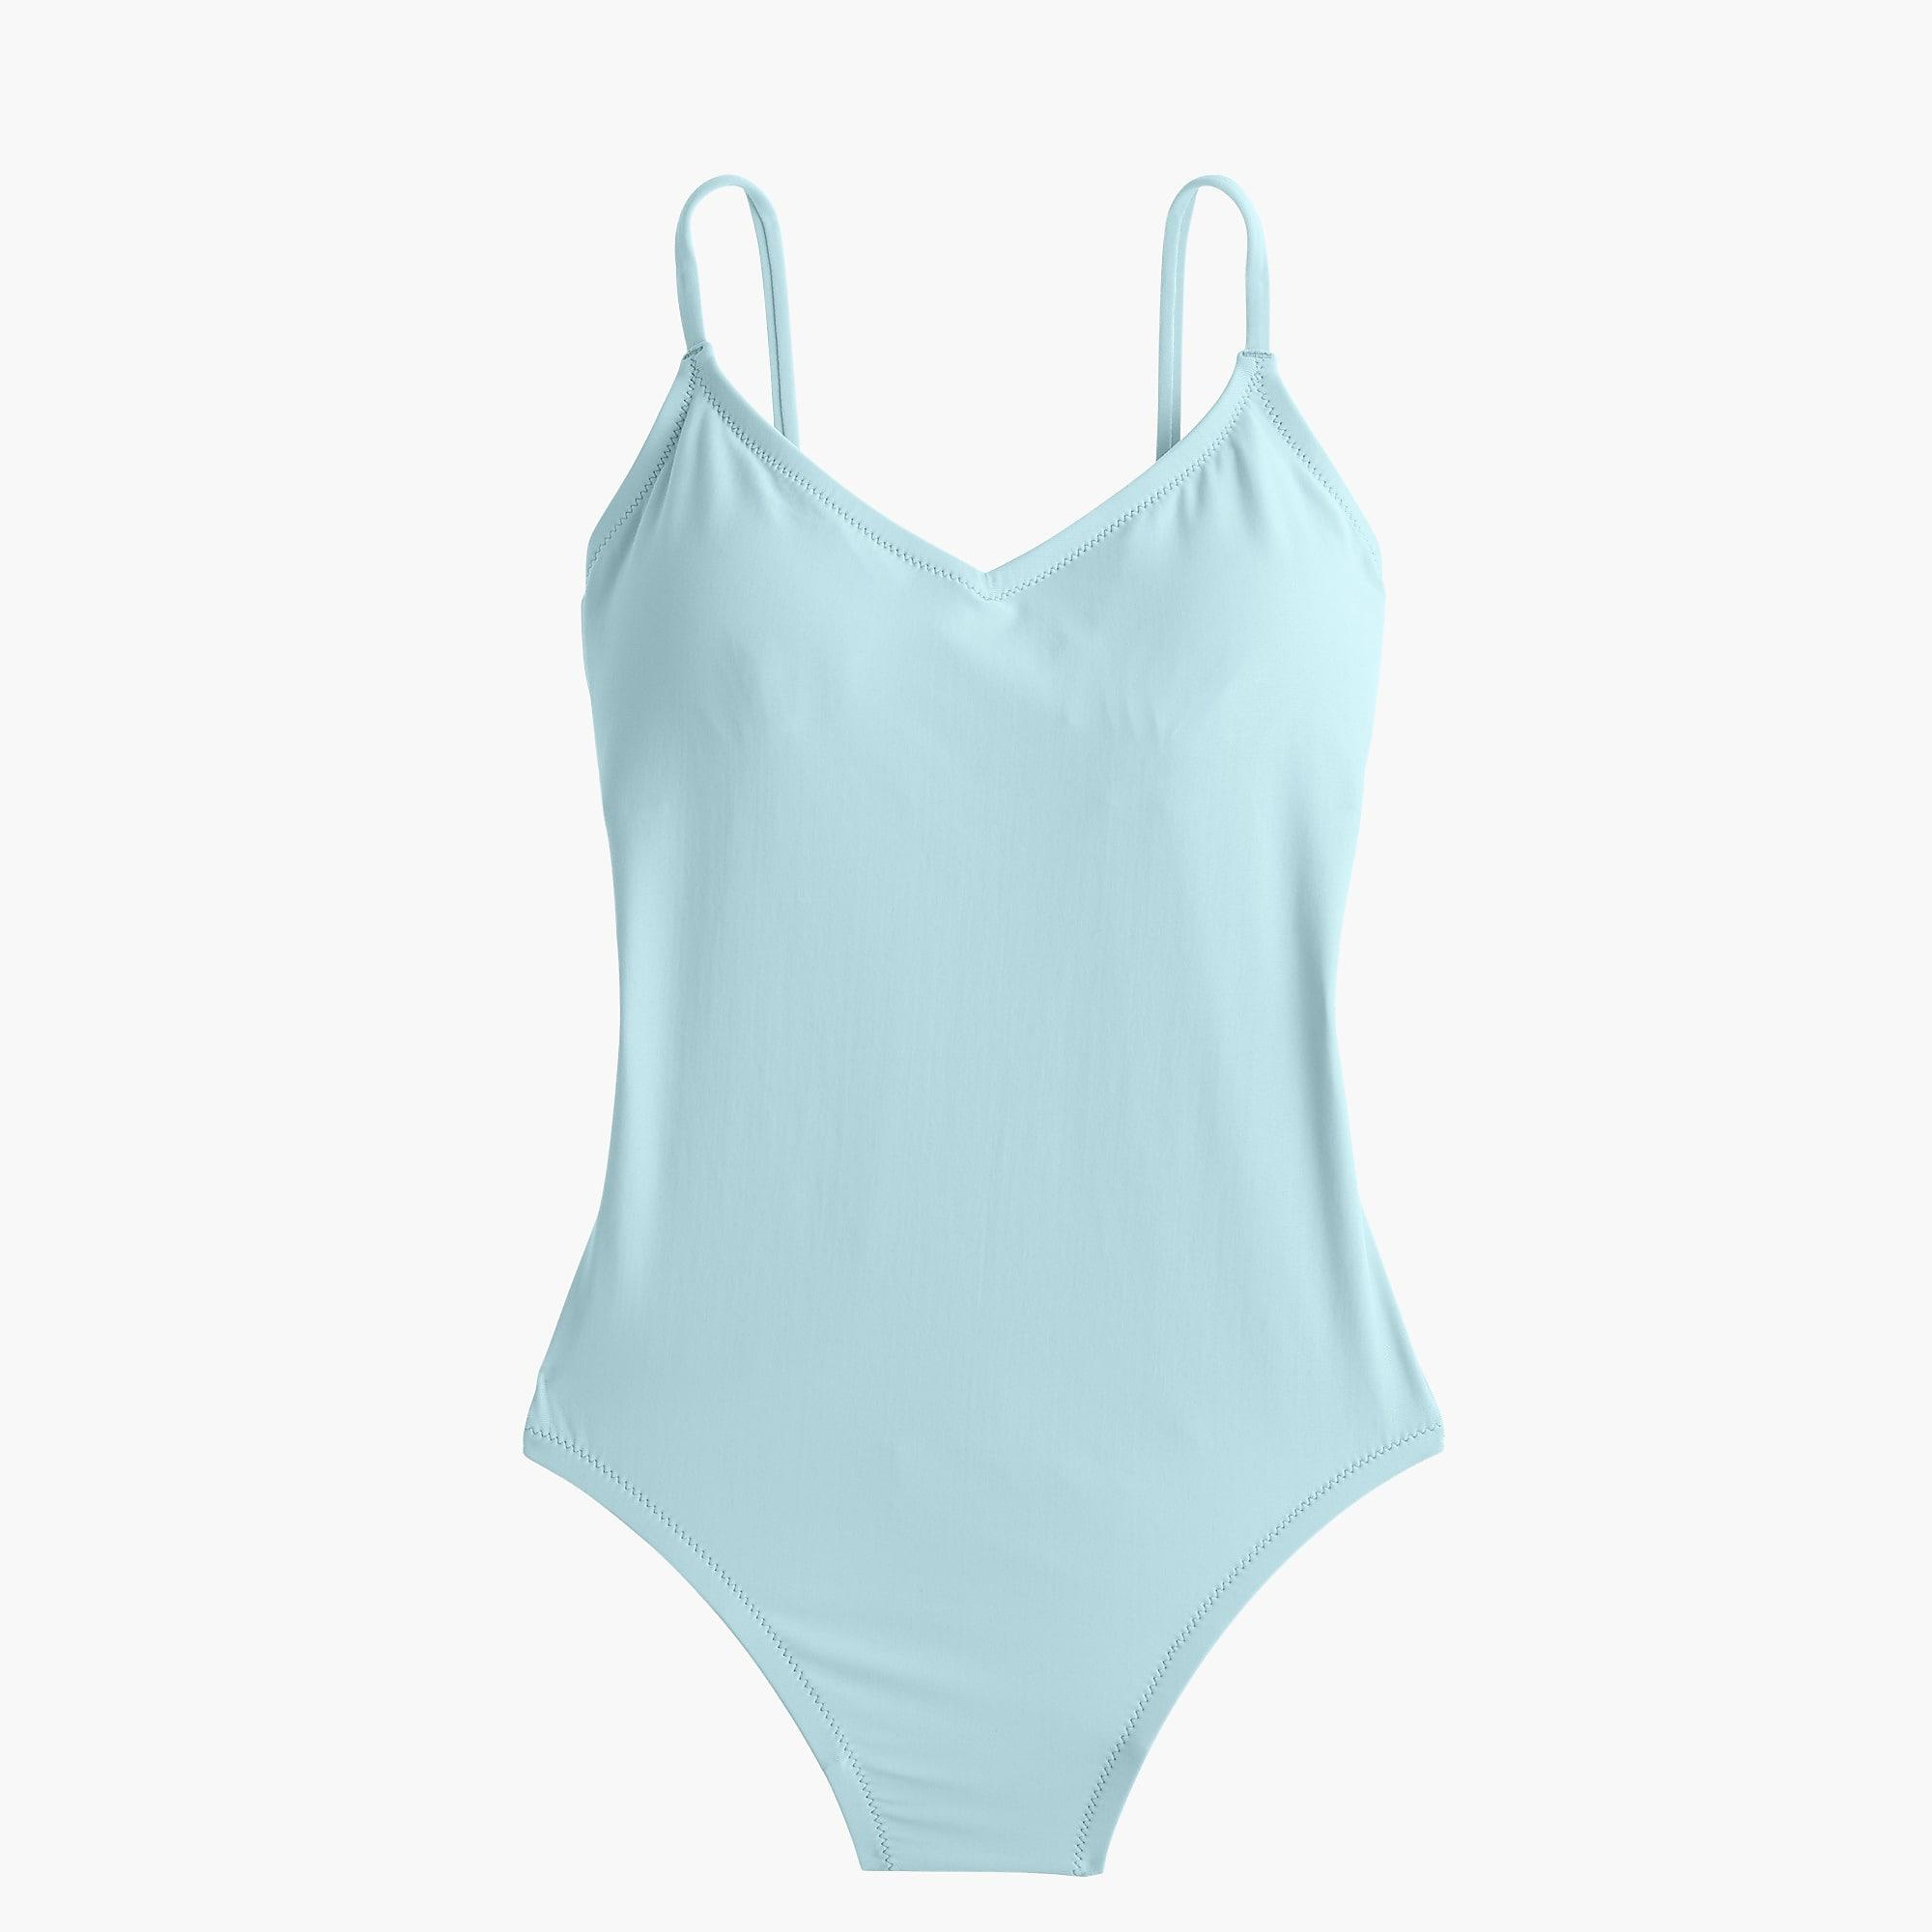 691409e103d J.Crew - Blue Ballet One-piece Swimsuit - Lyst. View fullscreen